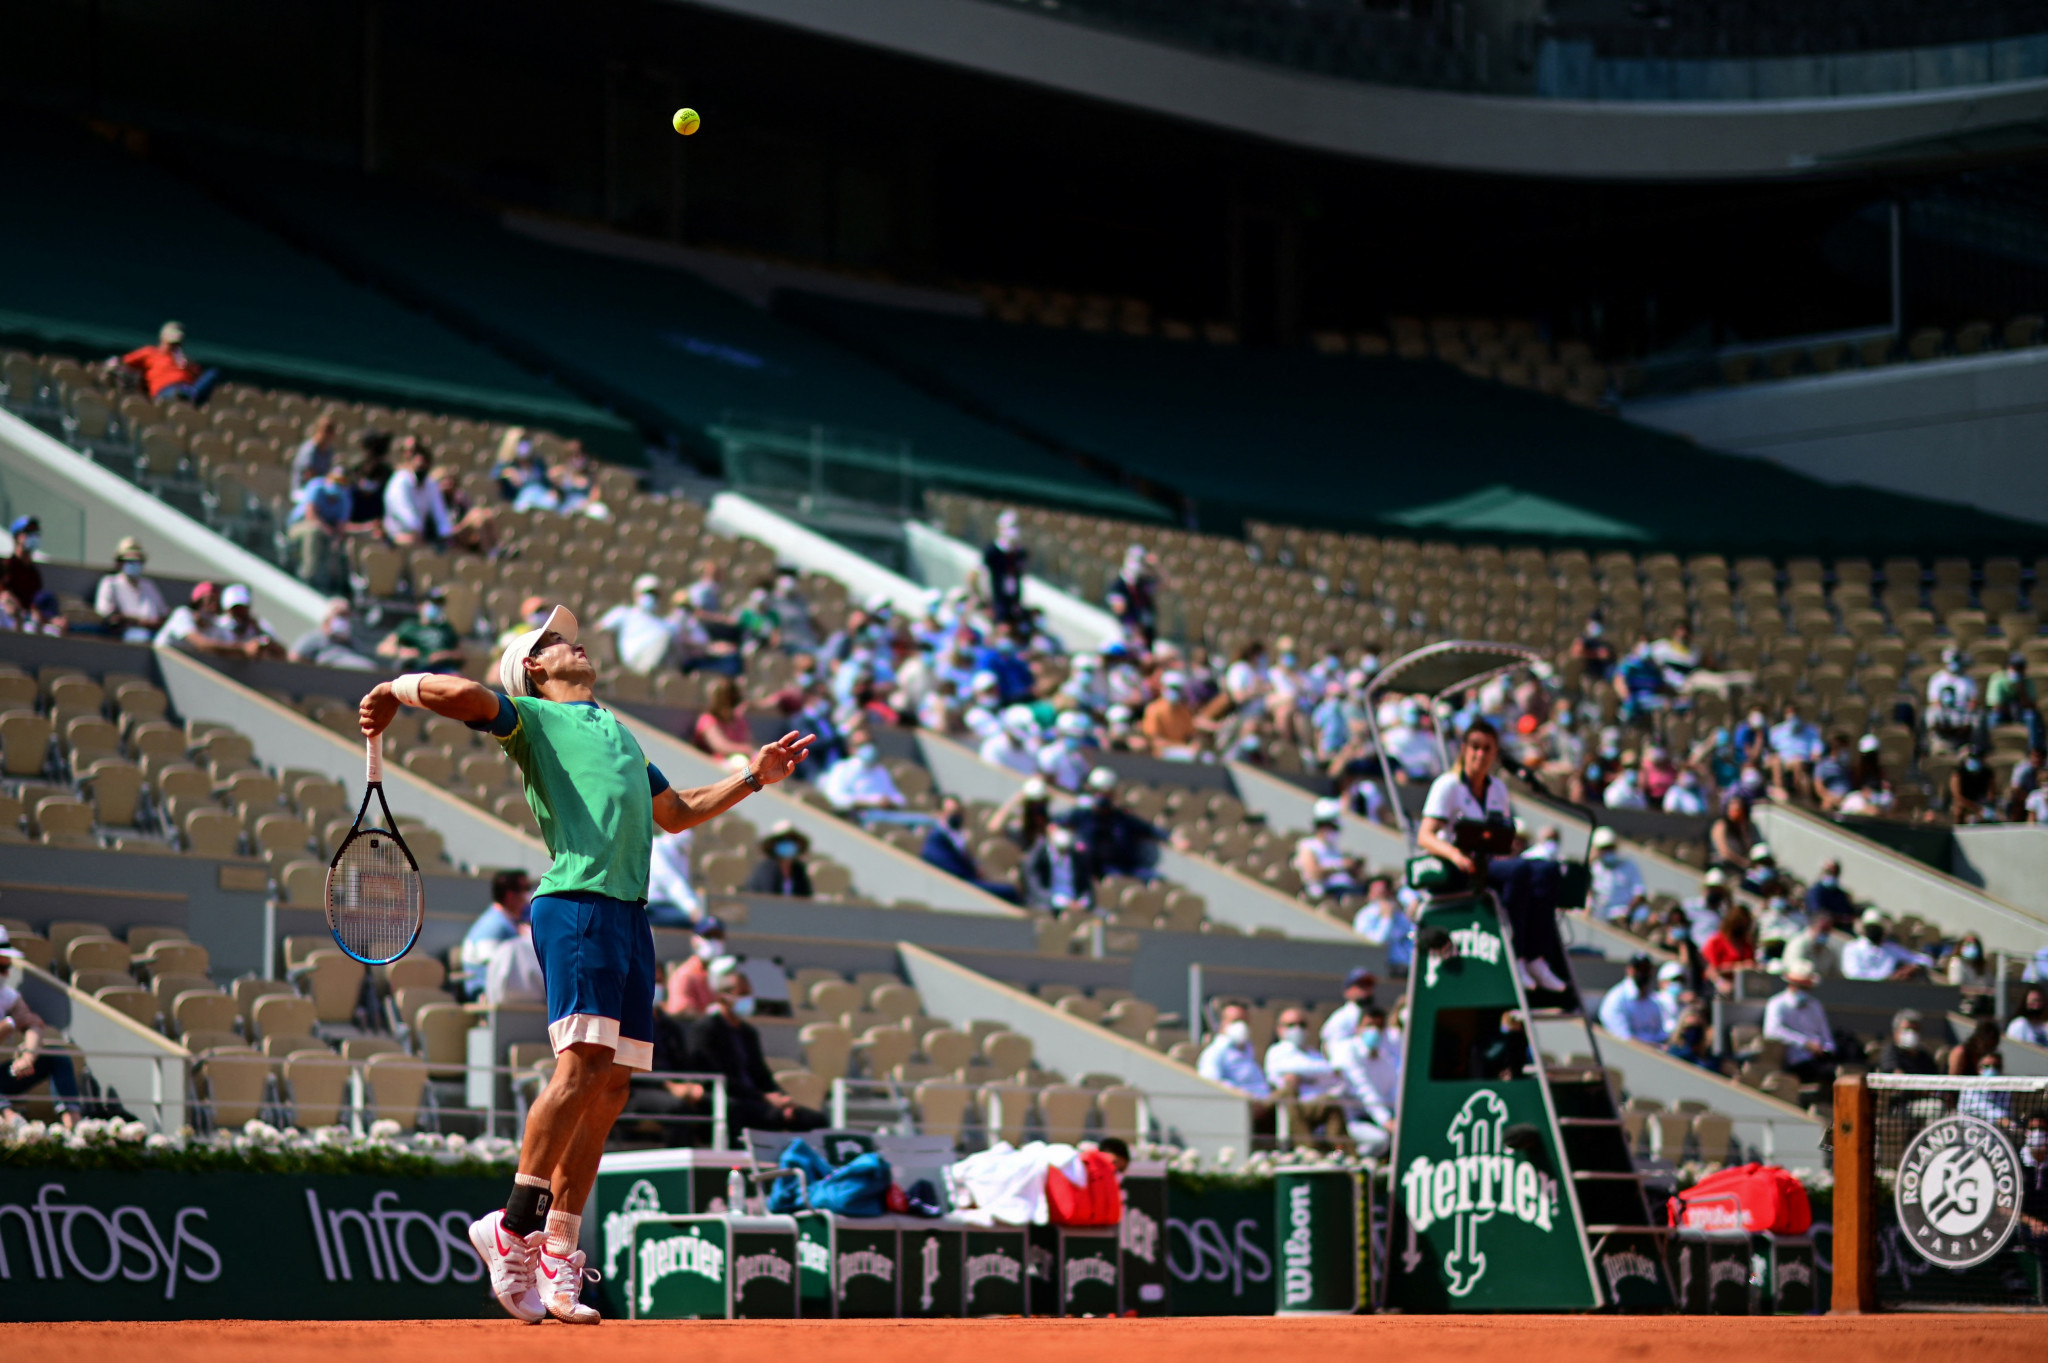 A sparse crowd watch the action as Nishikori and Khachanov go toe-to-toe on Philippe-Chatrier ©Getty Images